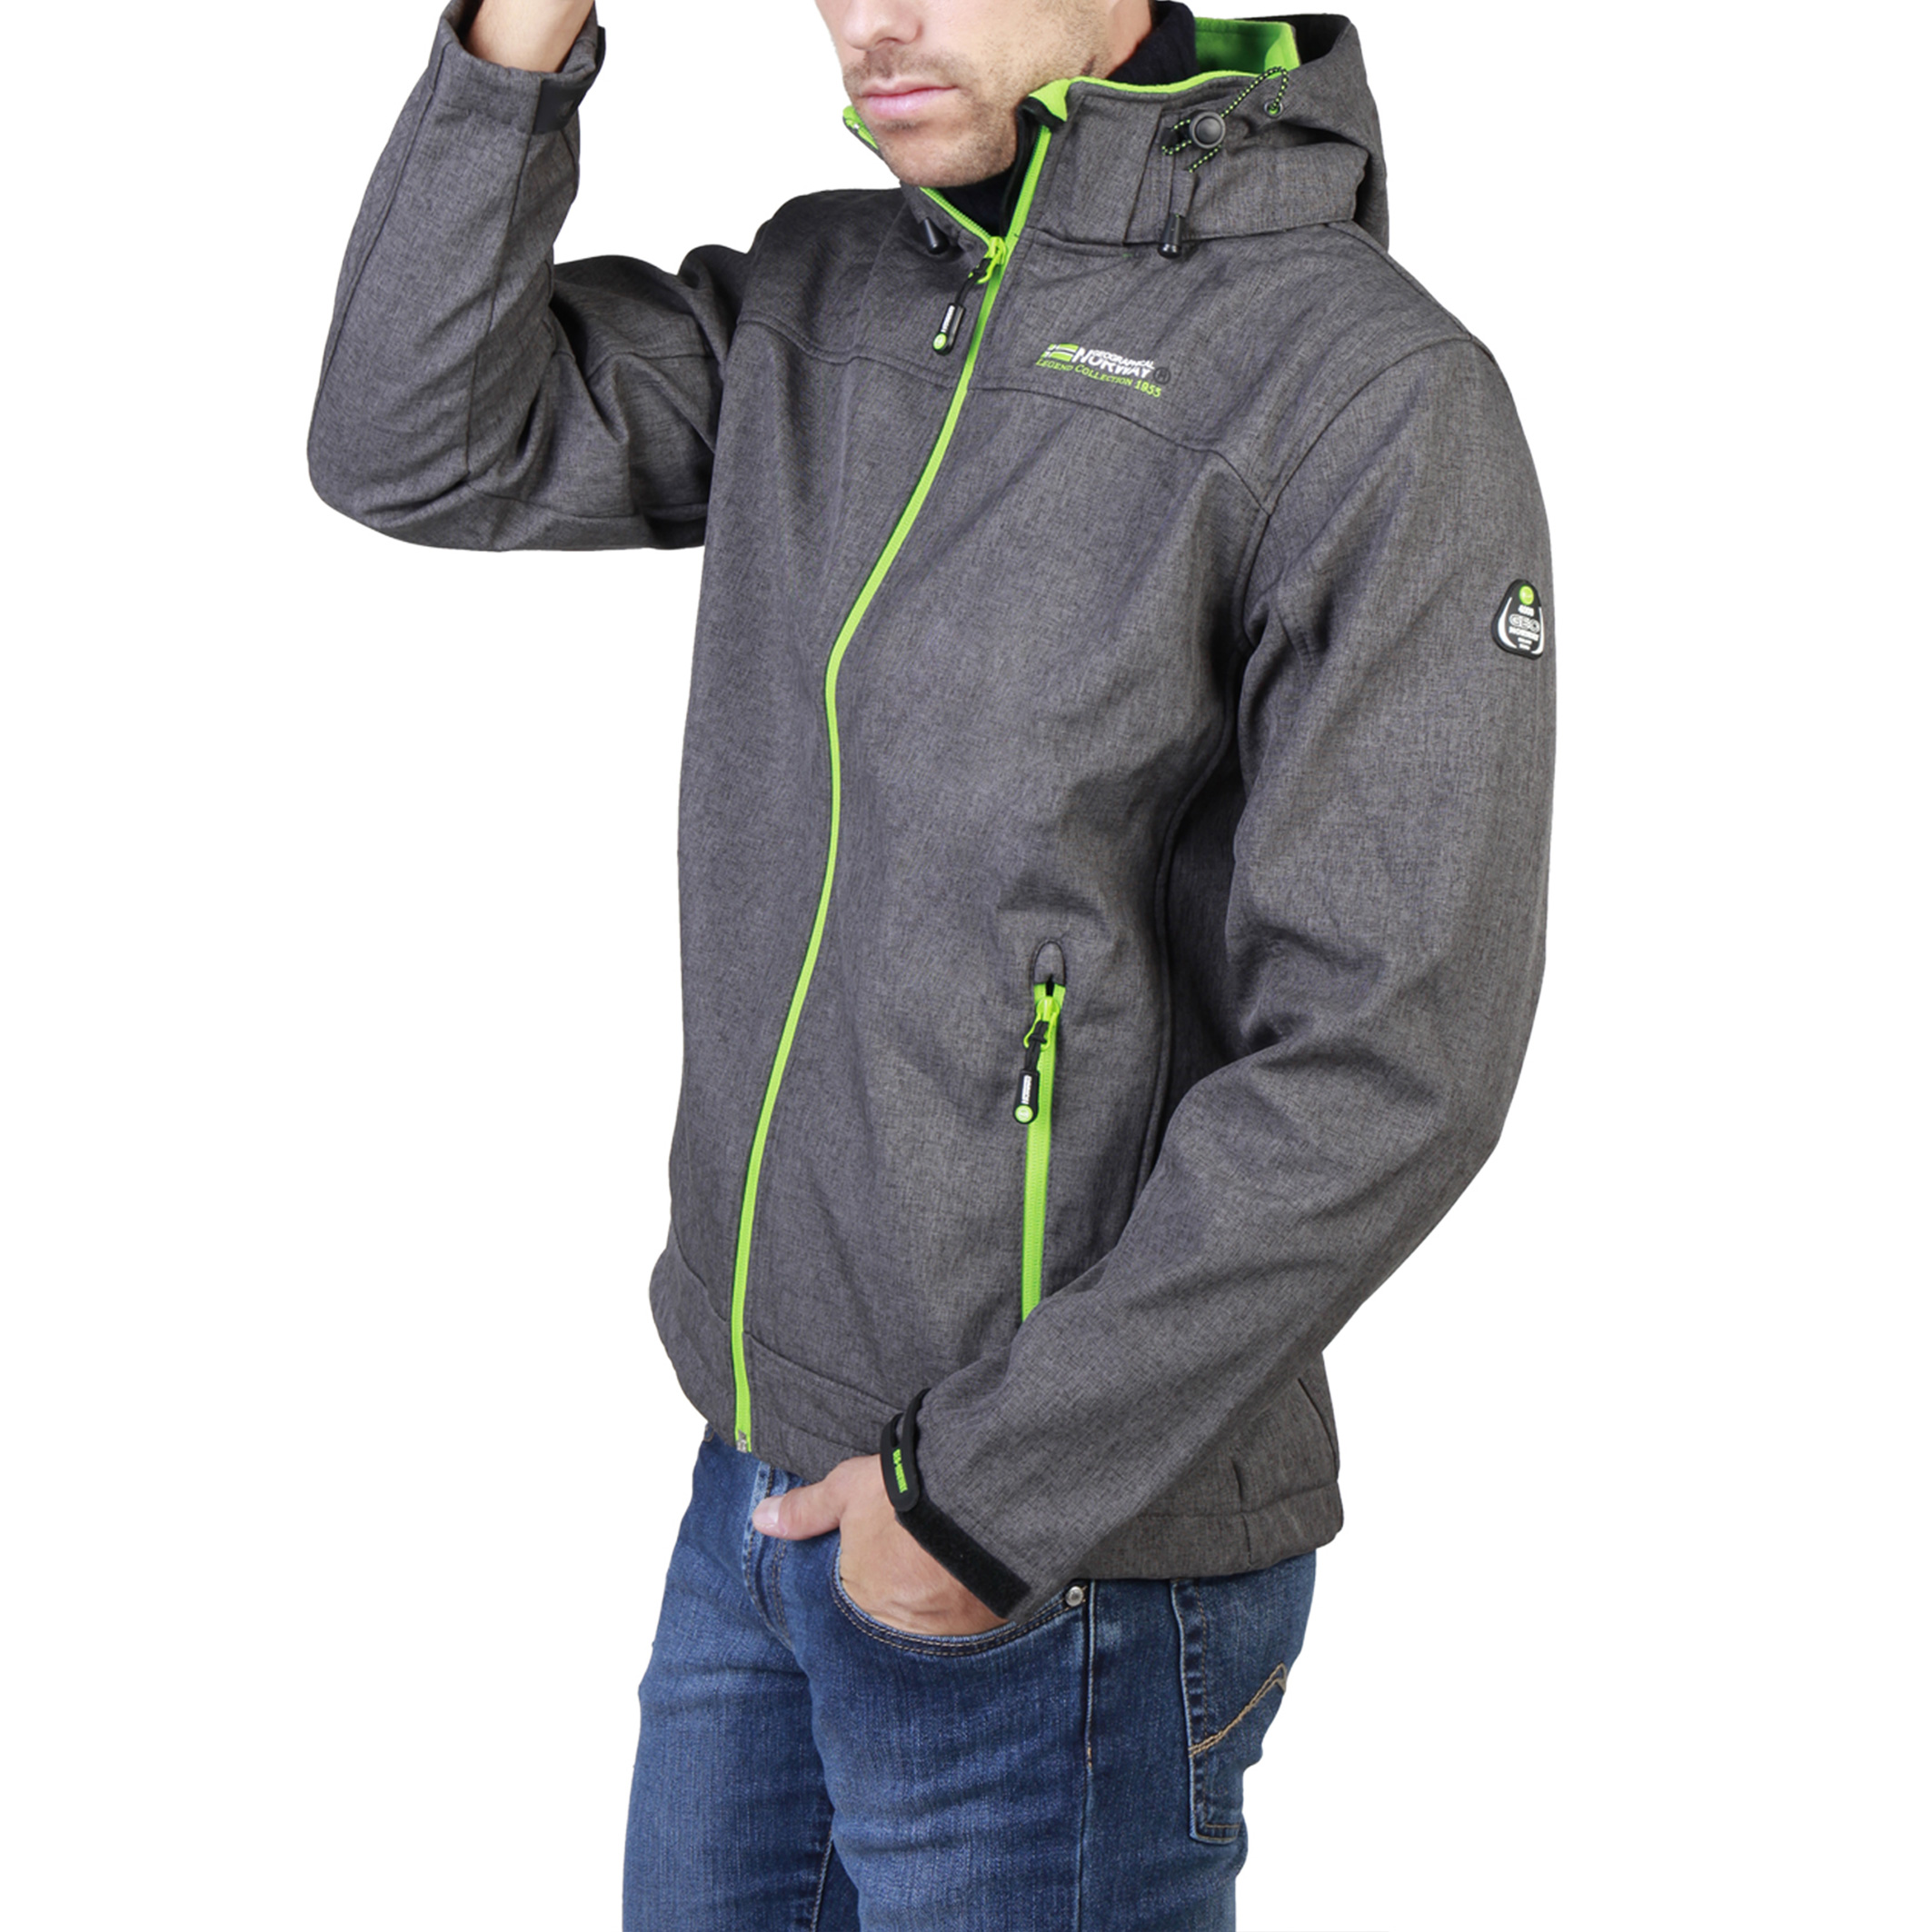 Vestes & blousons  Geographical norway Twixer_man grey